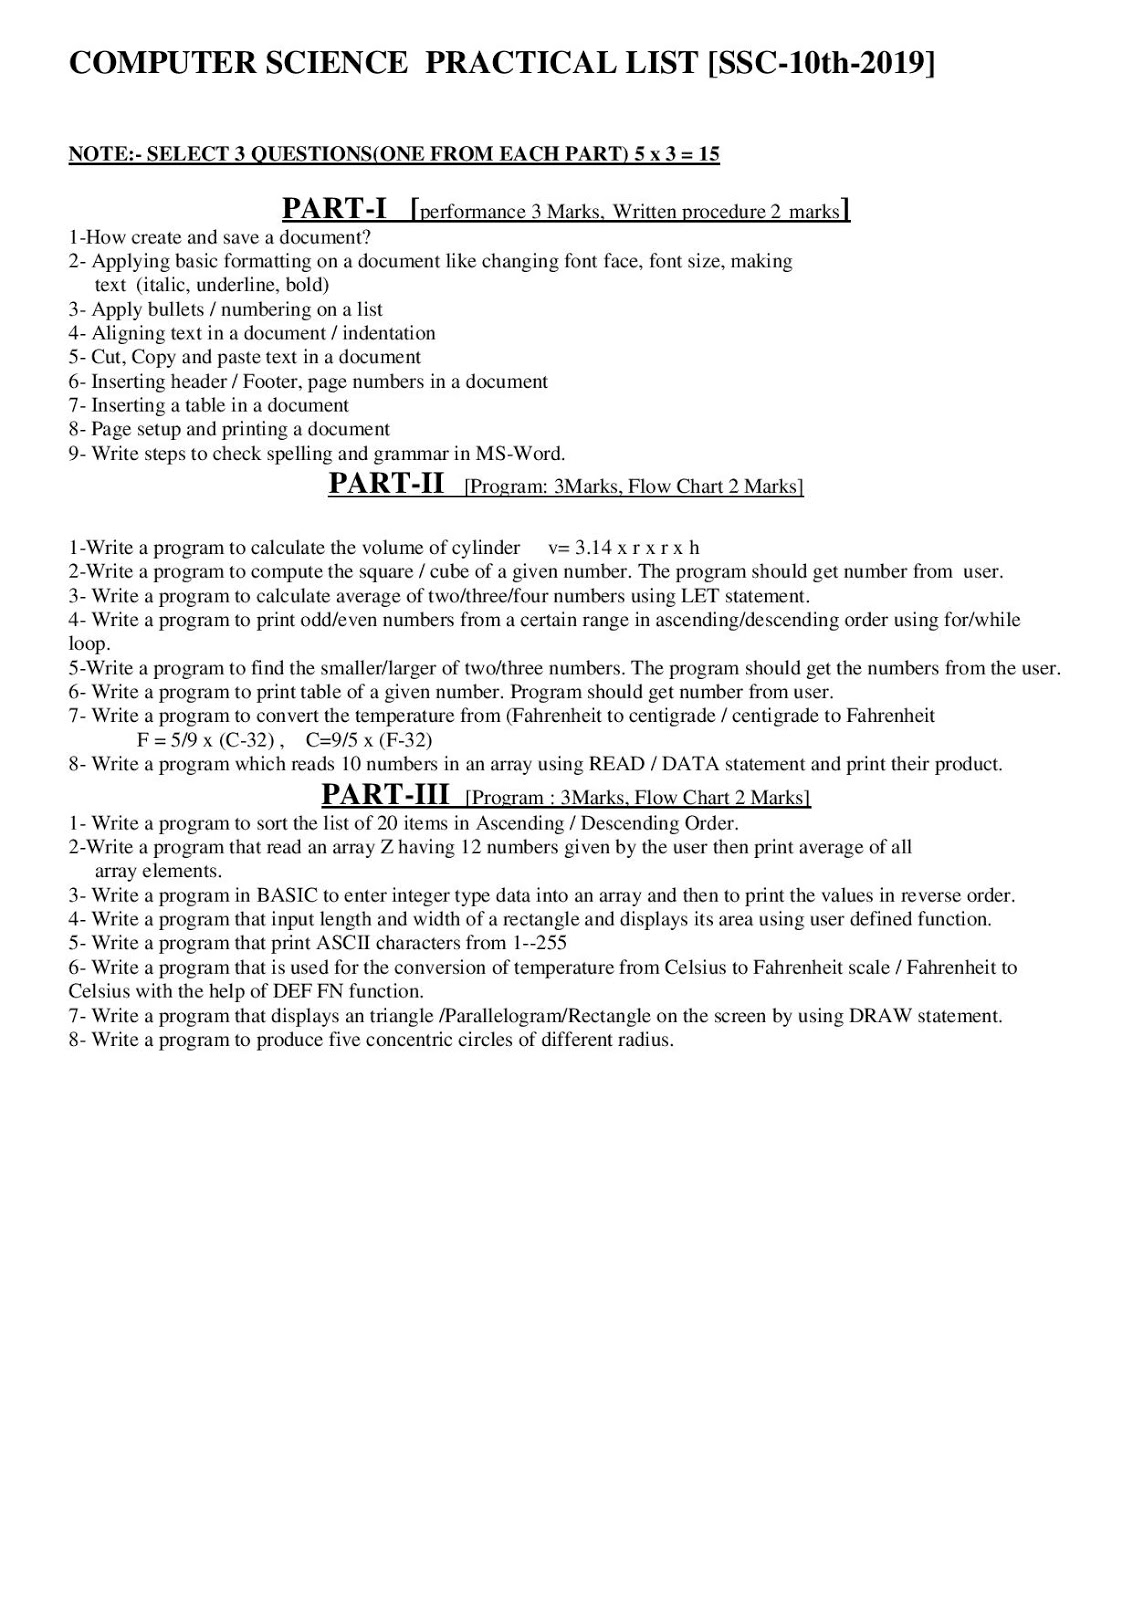 LIST OF COMPLETE PRACTICAL OF COMPUTER SCIENCE 10TH CLASS